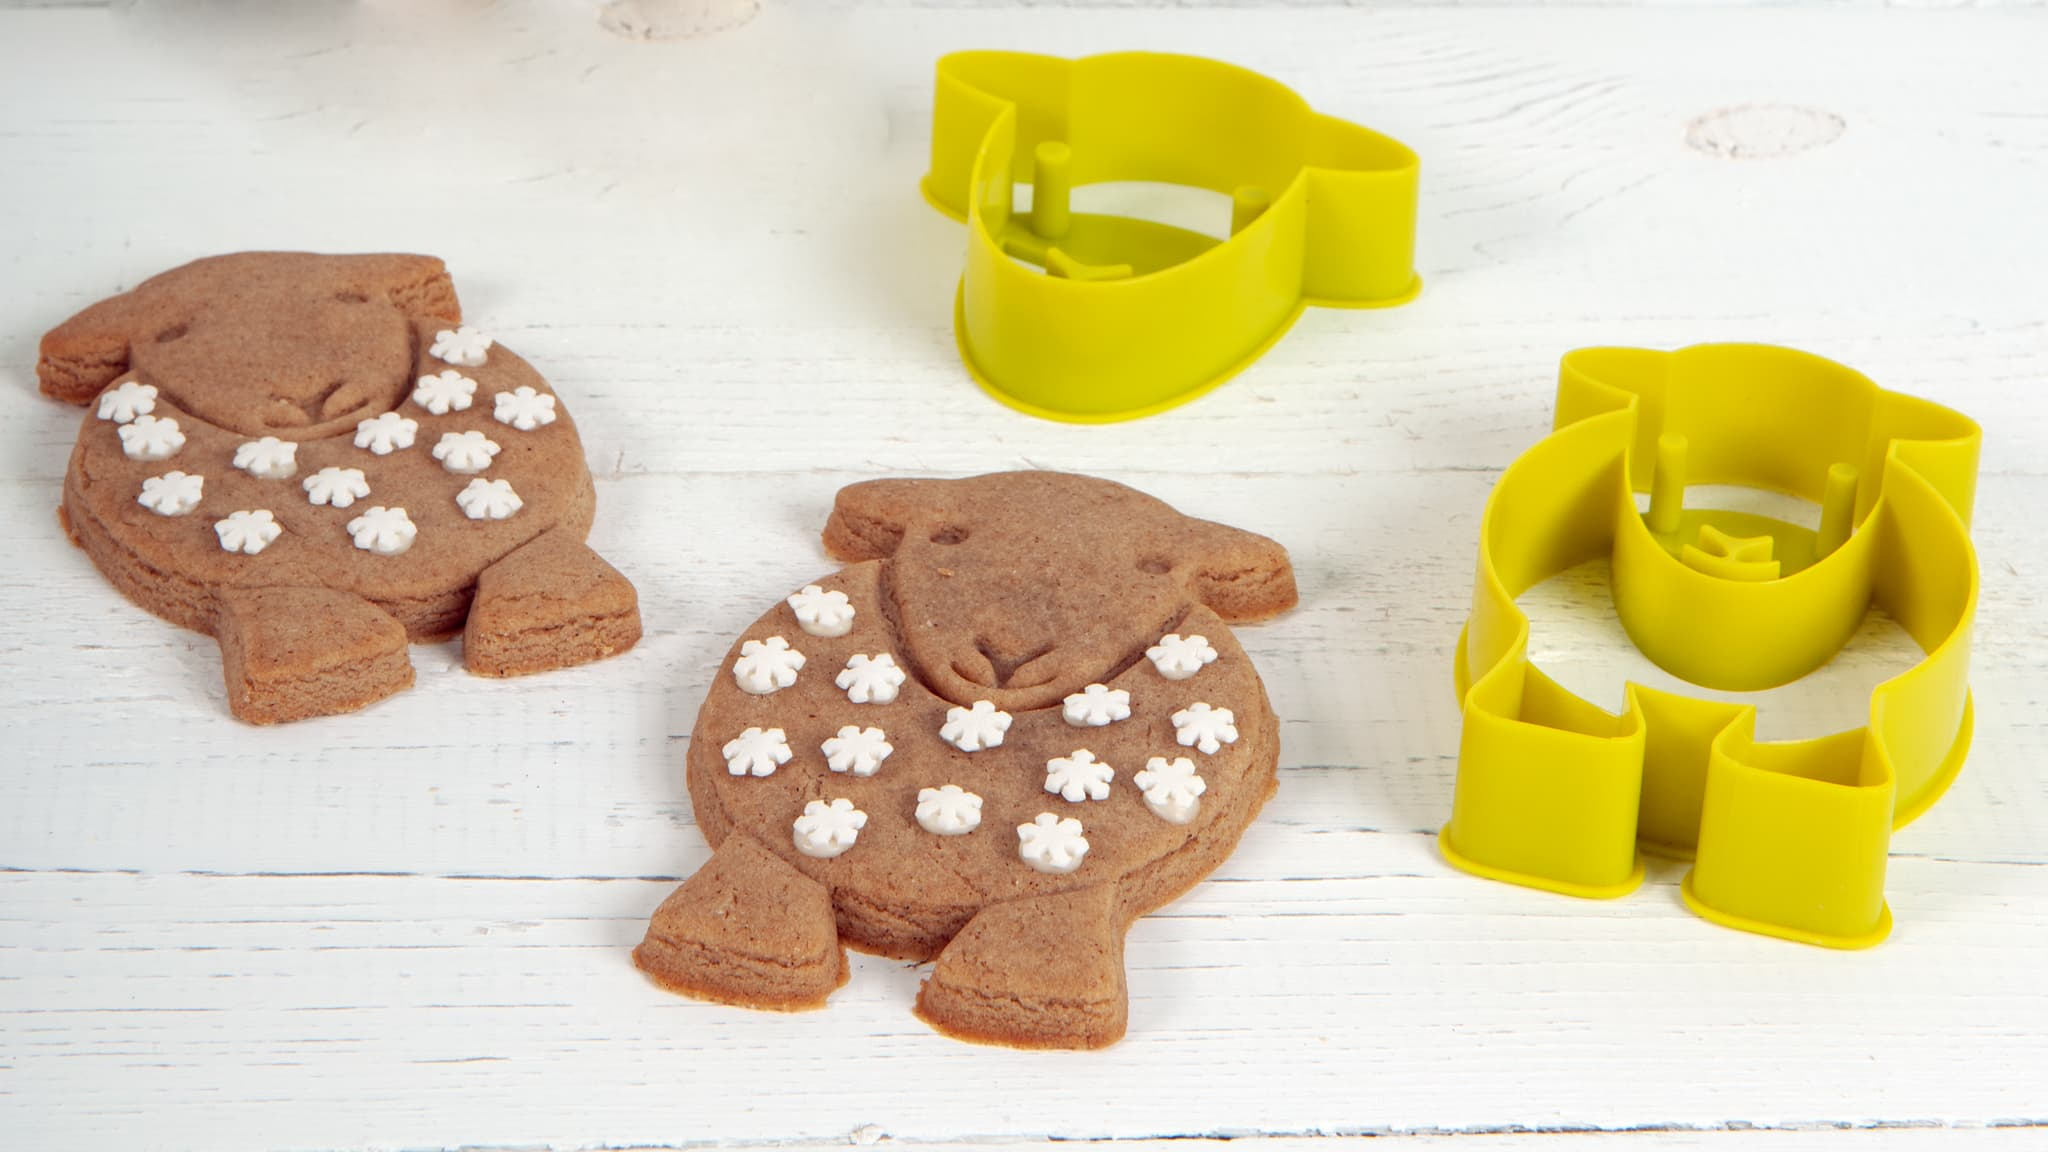 Decorate your Herdy Yan Christmas gingerbread however you like